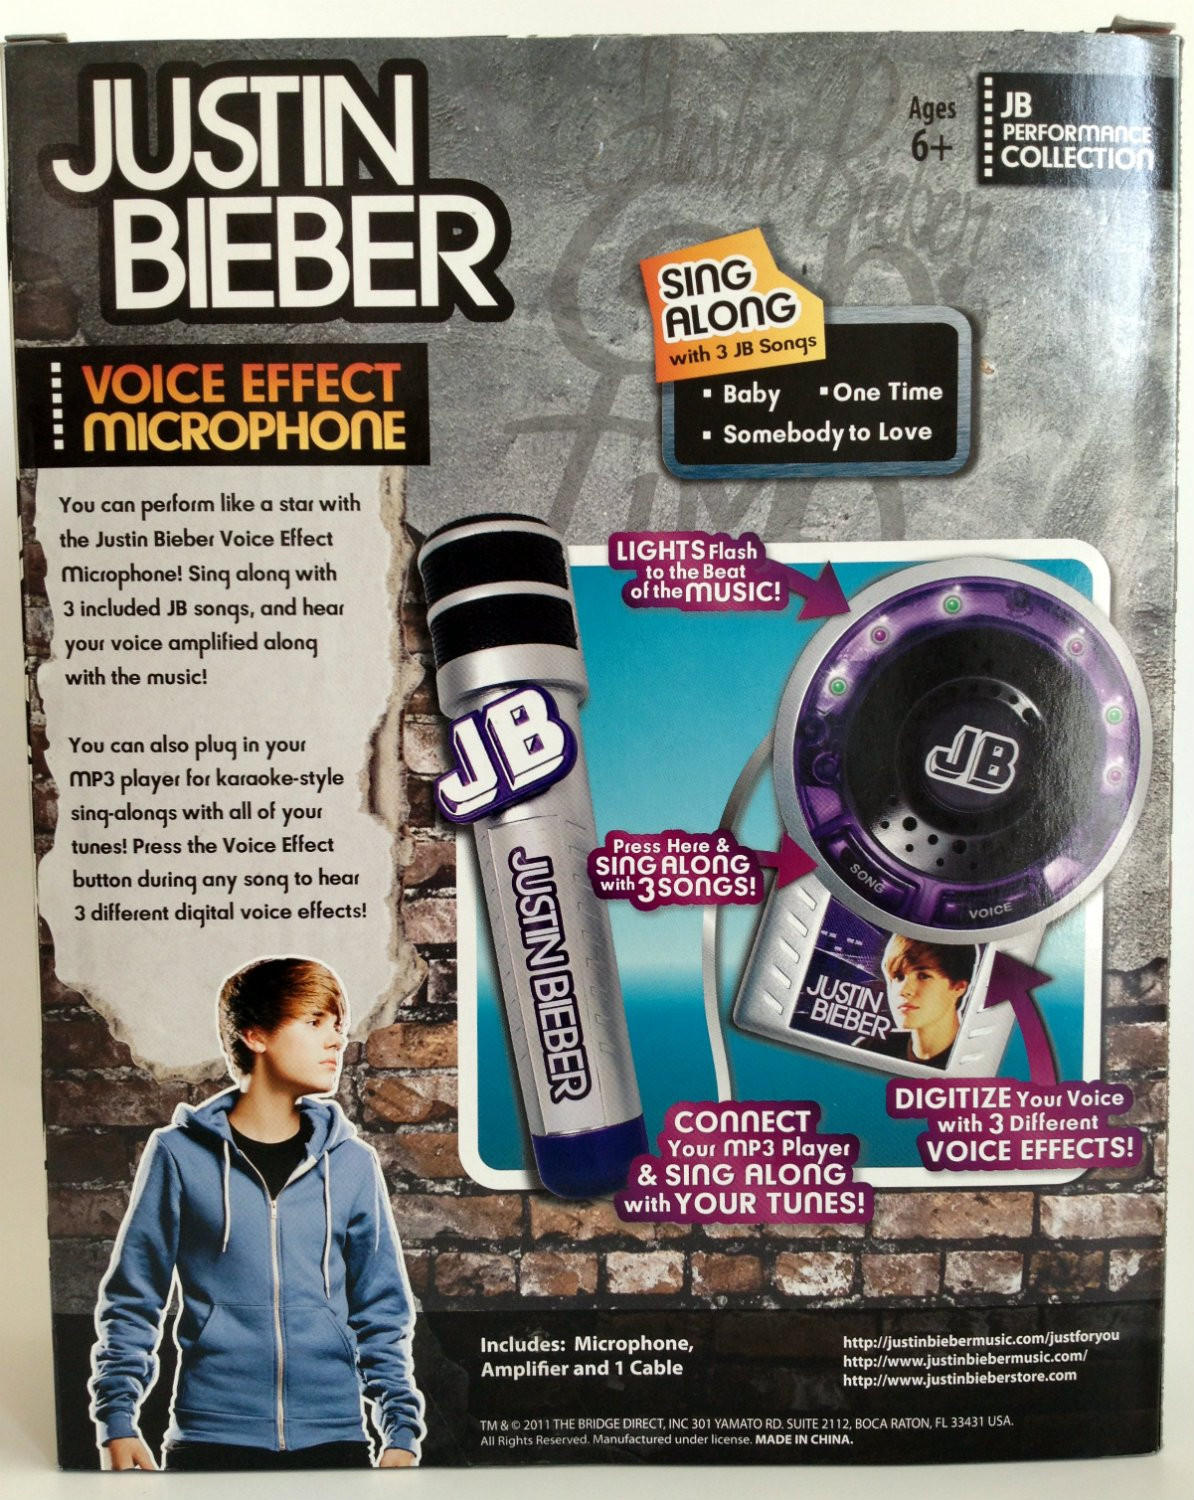 Justin Bieber Voice Effects Microphone with Amplifier